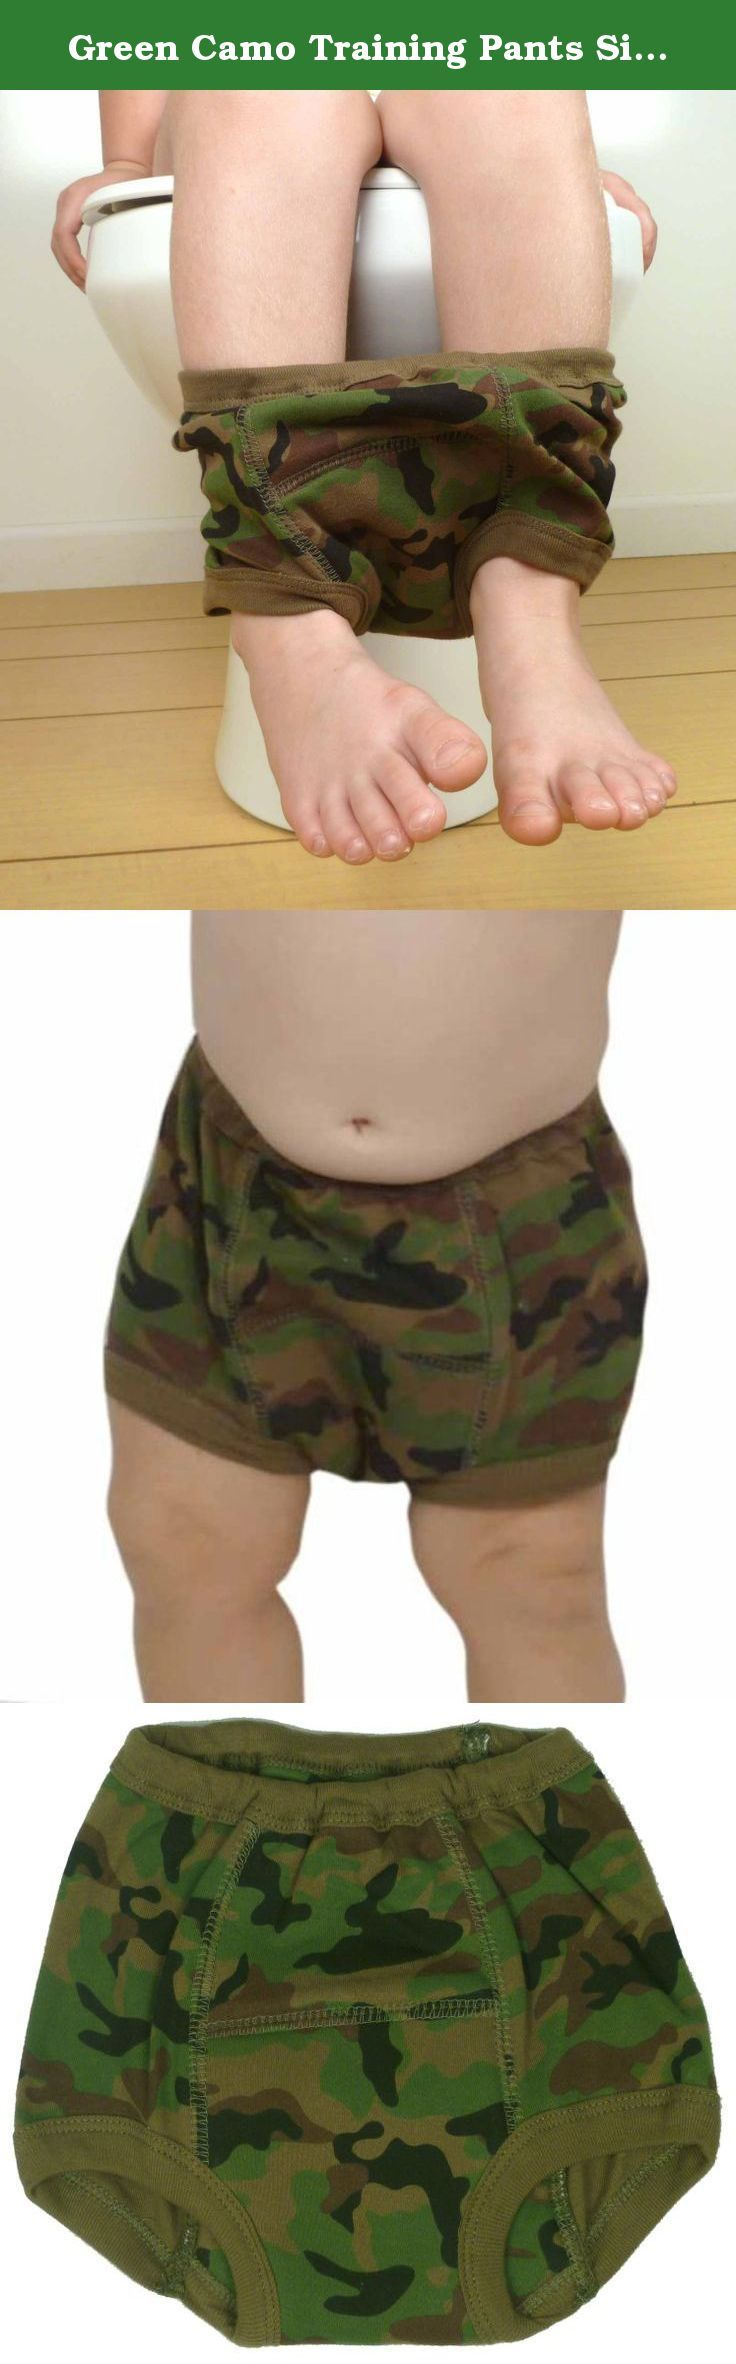 Green Camo Training Pants Size:S. Camo Potty Training Pantsare the prefect potty training accessory for the budding outdoors man, military family, or avid hunting toddler. These green camouflage cloth training pants are not just fashionable, the are also a great motivator for potty training toddlers. These cloth training pants have an absorbent center panel that contains the accidents, but still allows your toddler to feel uncomfortable and therefore increase her awareness of her…